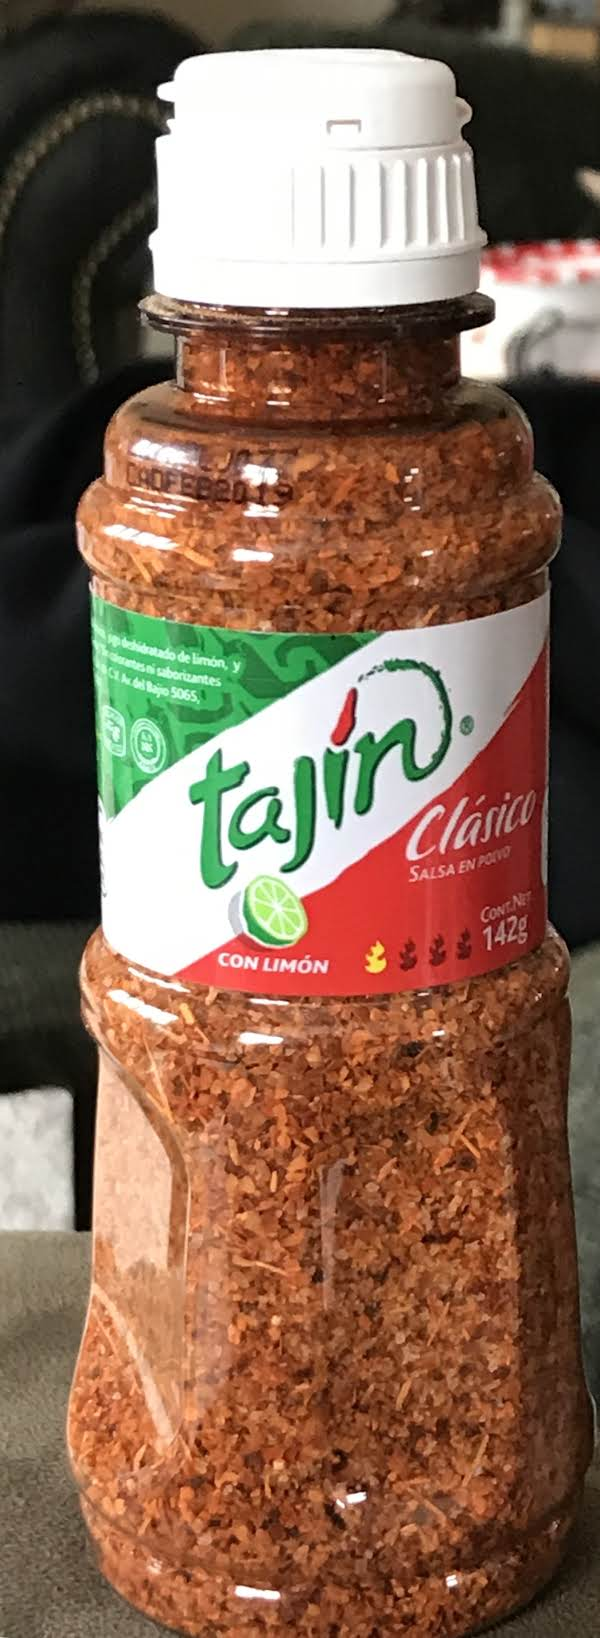 This Is The Seasoning I'm Talking About!